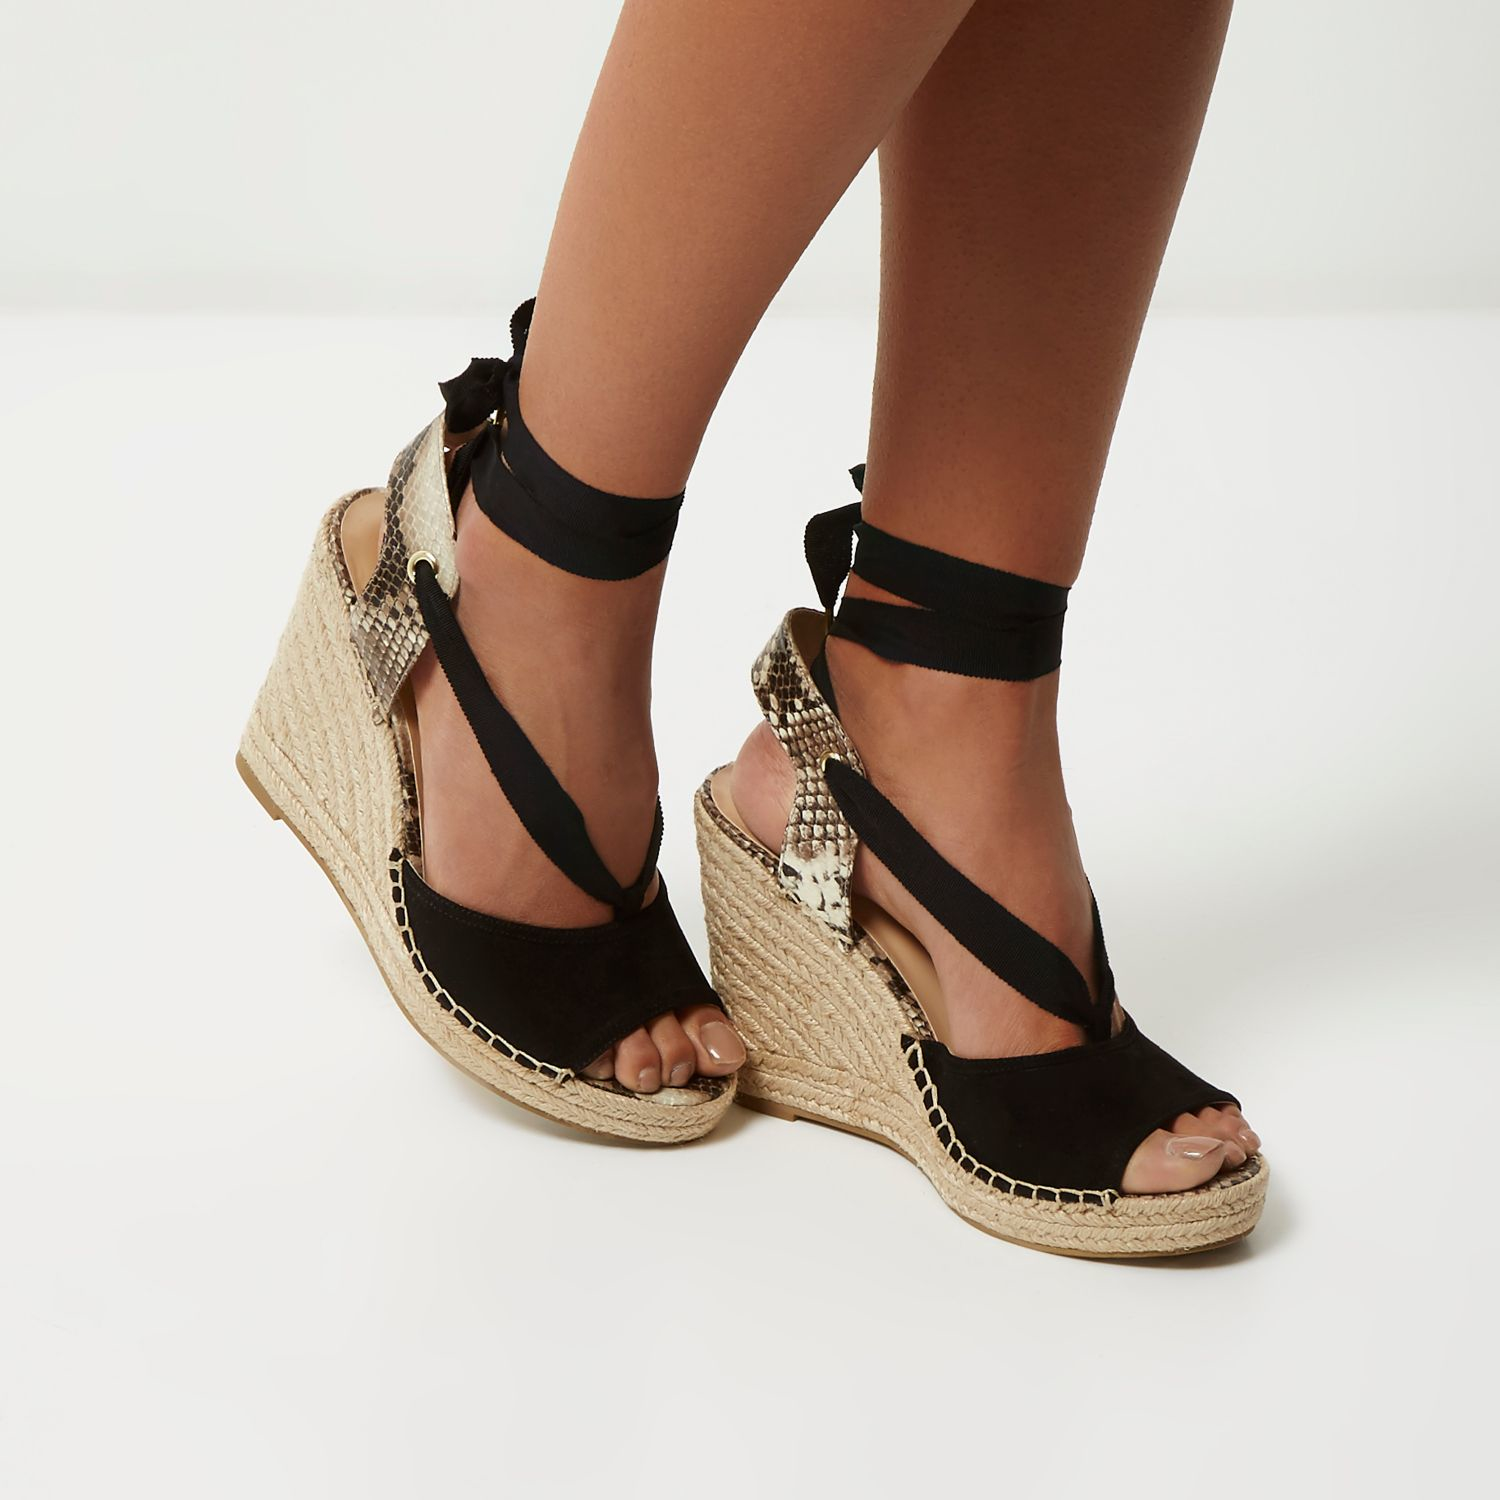 River Island Espadrilles With Ankle Strap